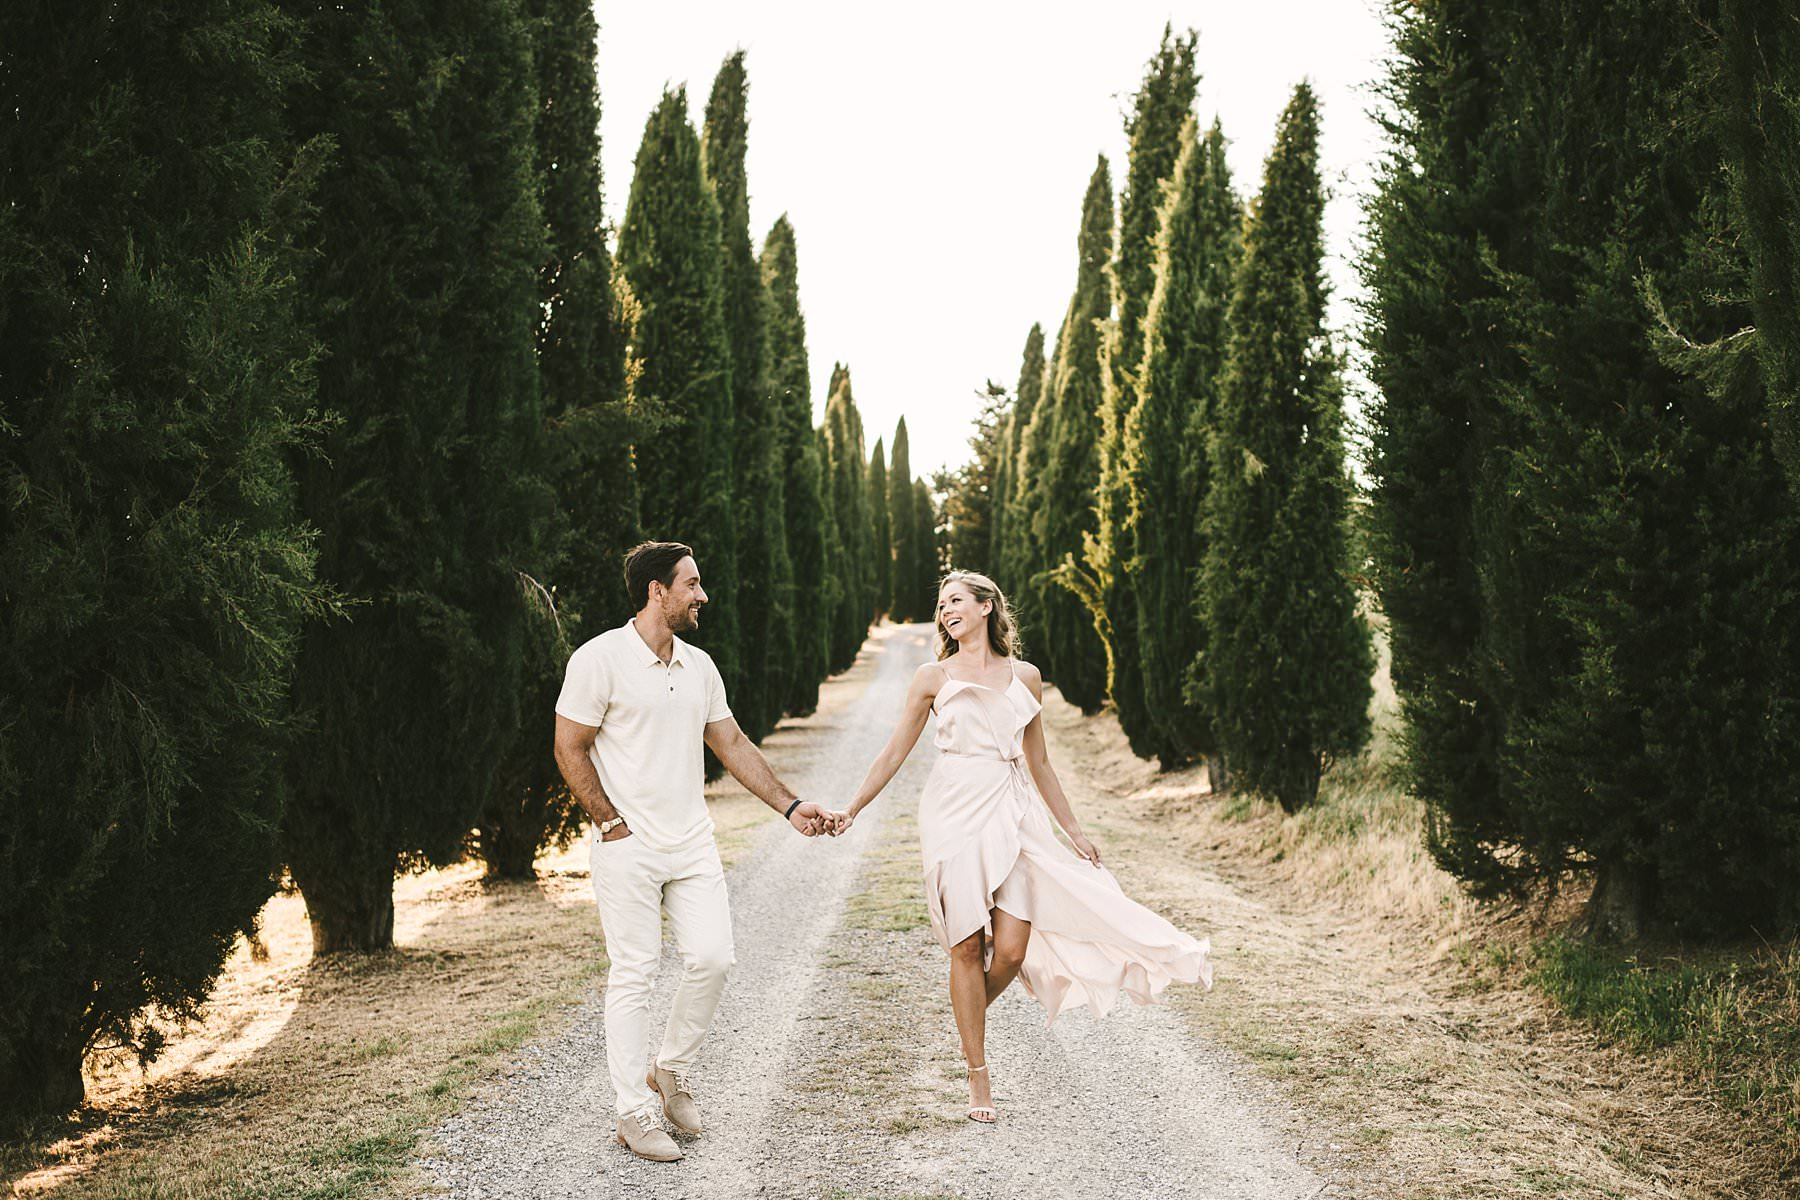 Elegant and romantic engagement experience in the Val D'Orcia area of Tuscany near Pienza with cypresses street in the countryside